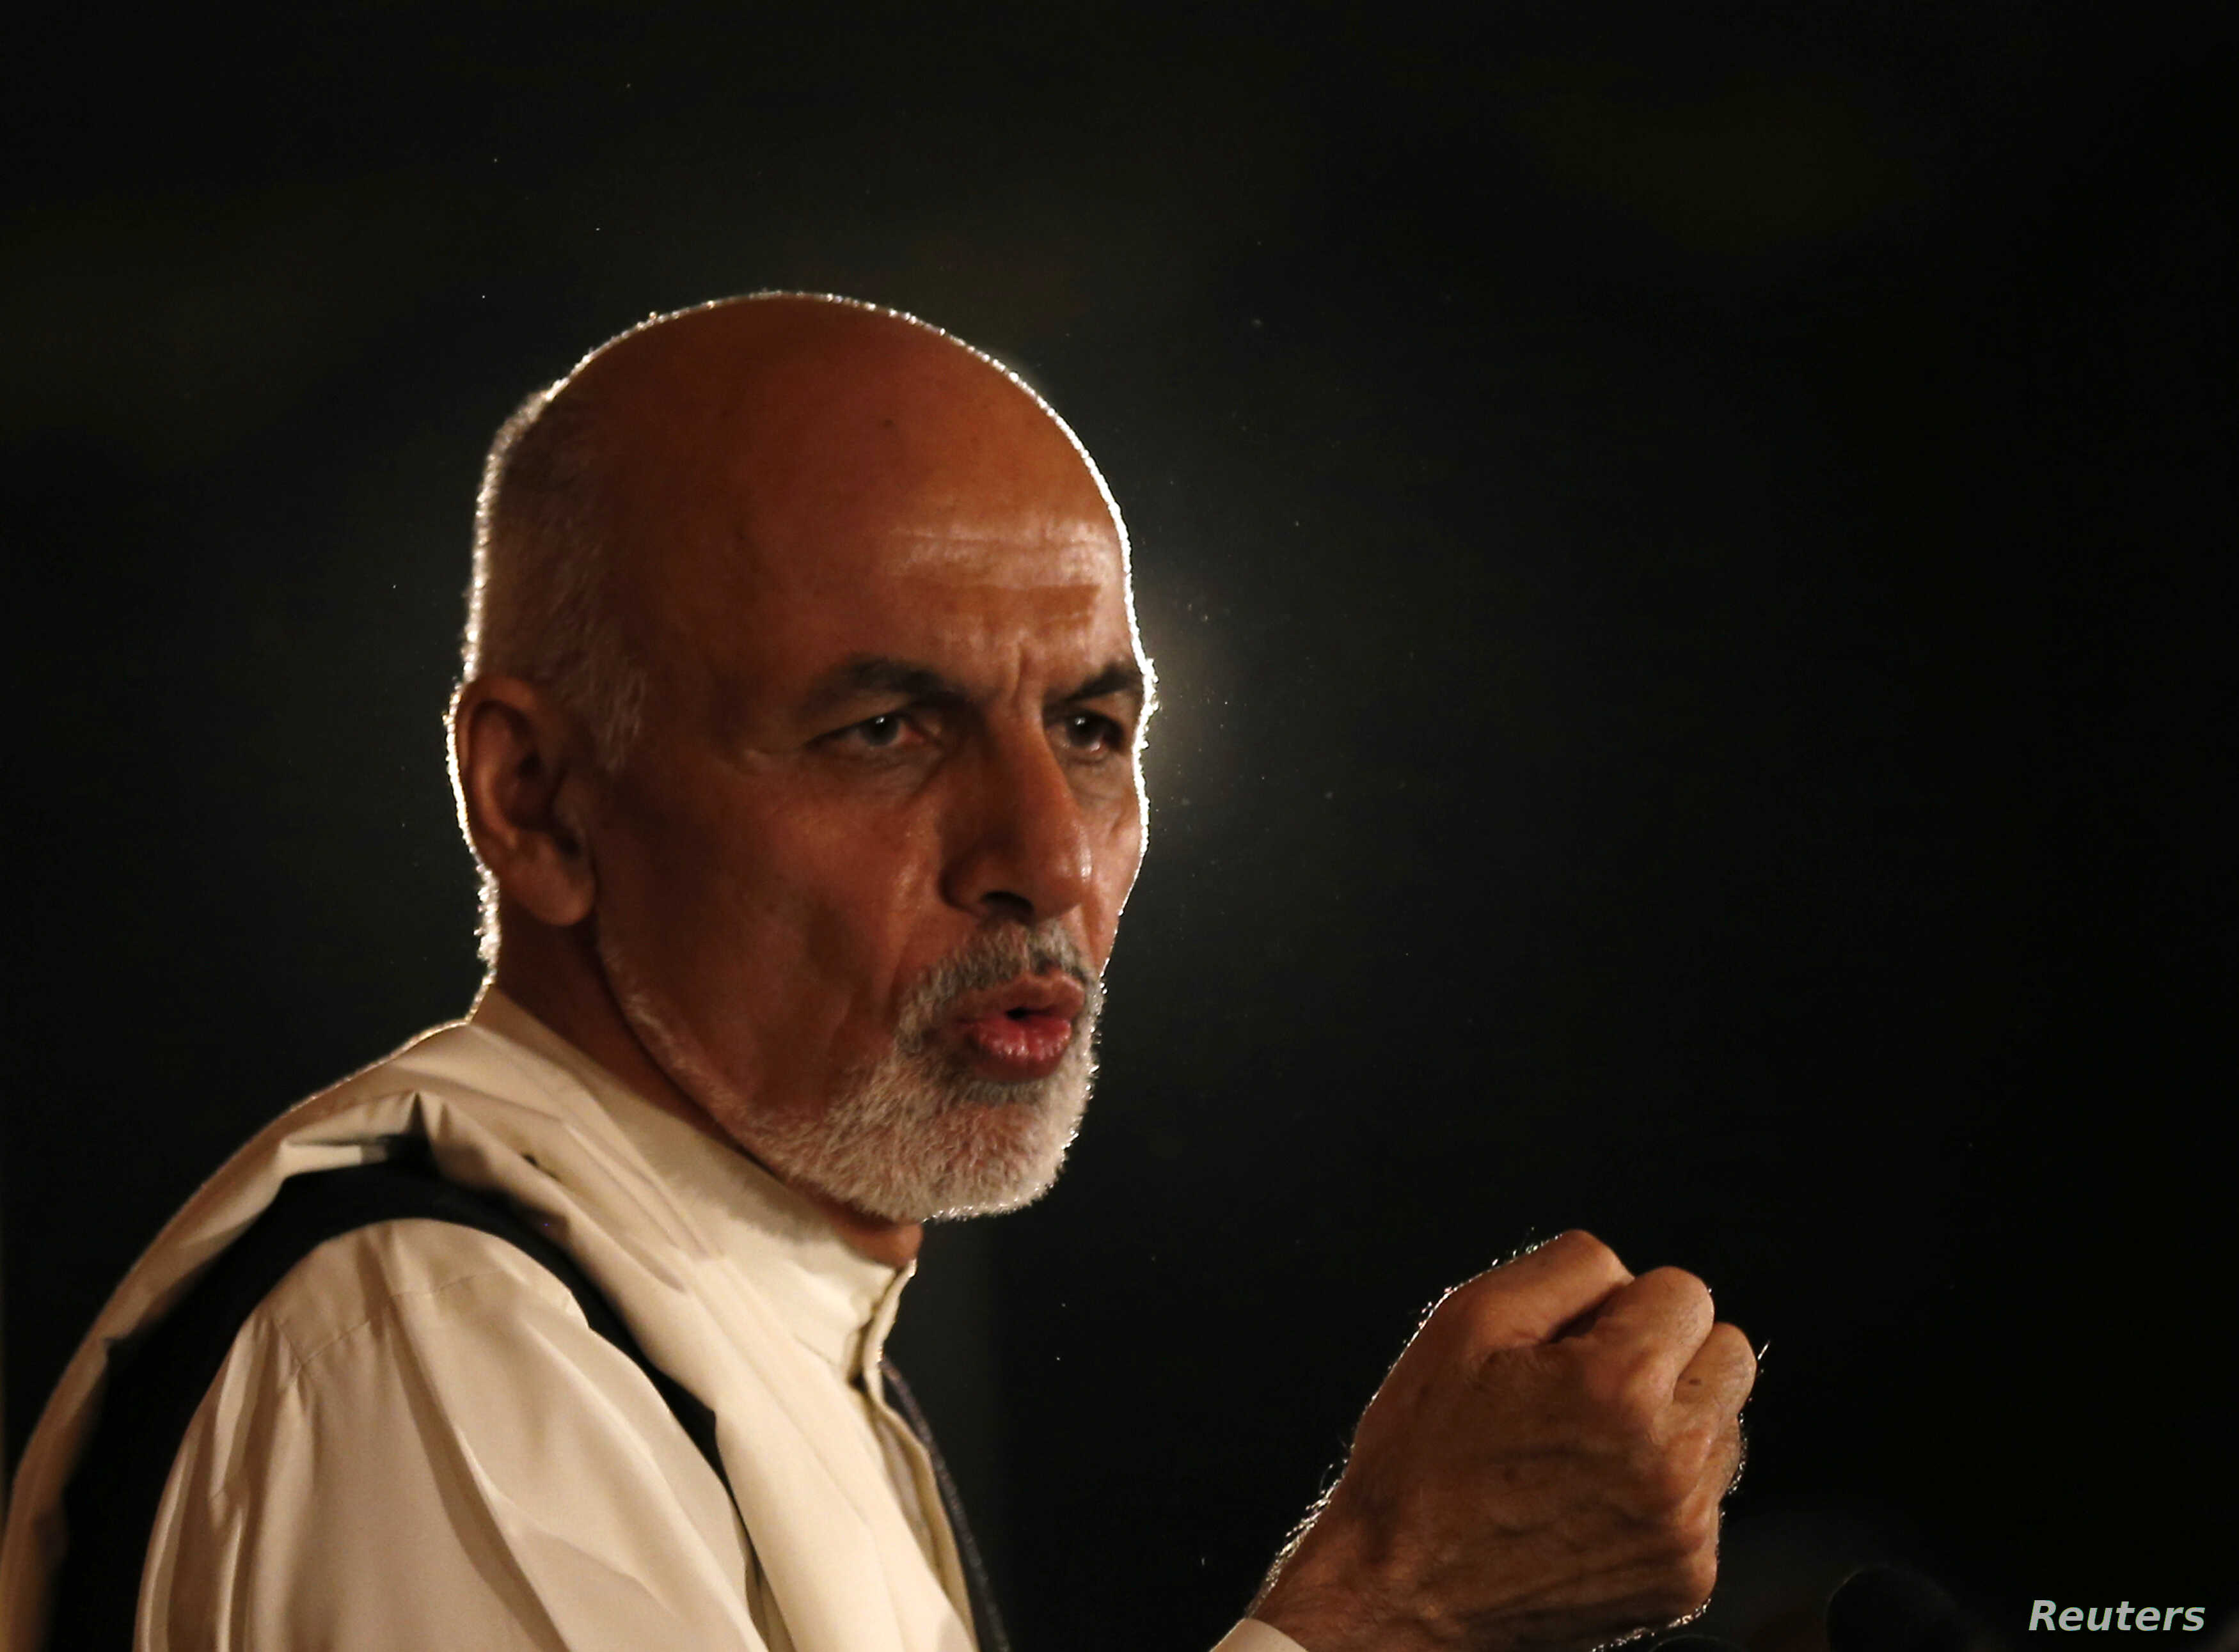 Afghan presidential candidate Ashraf Ghani speaks during a news conference in Kabul, Afghanistan, Sept. 10, 2014.